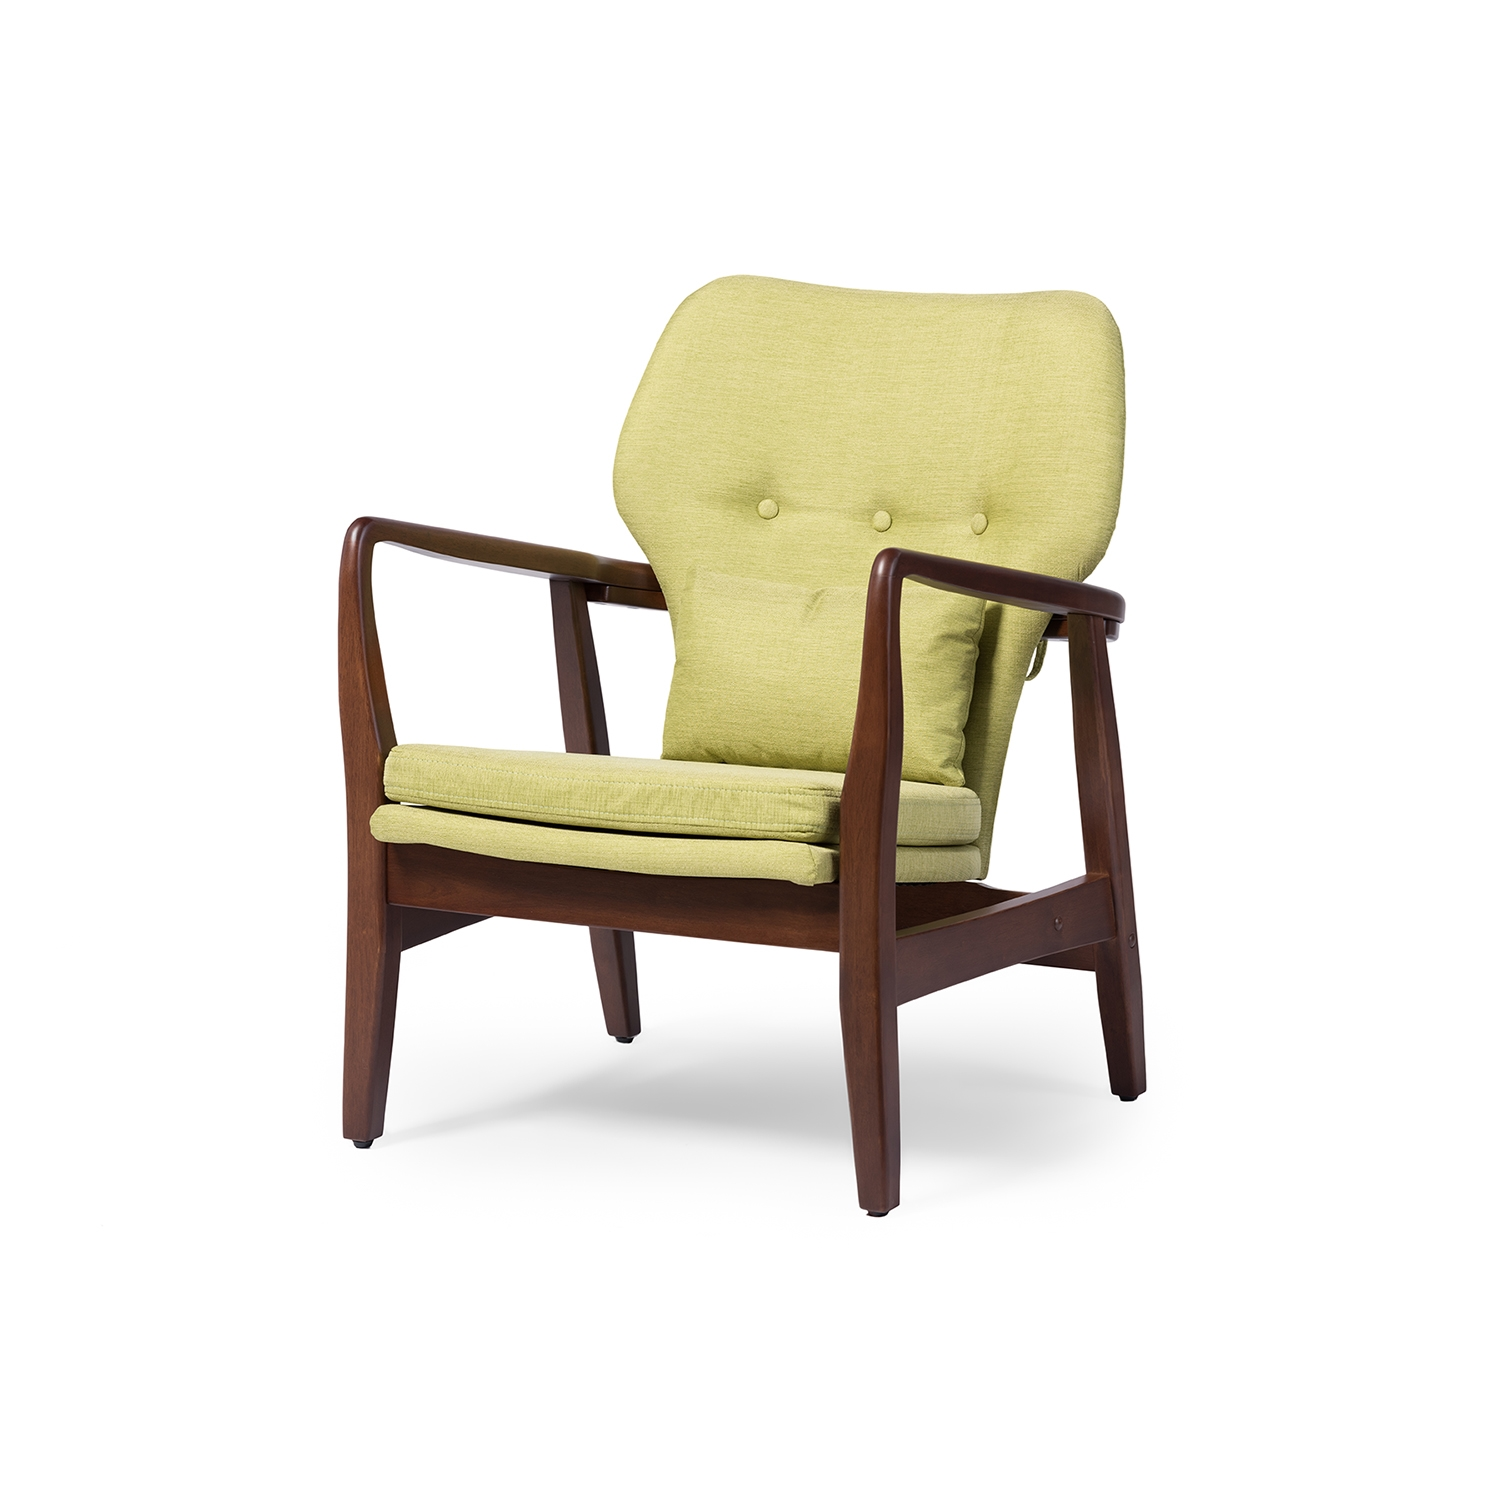 Baxton Studio Rundell Mid Century Modern Retro Green Fabric Upholstered  Leisure Accent Chair In Walnut Wood Frame